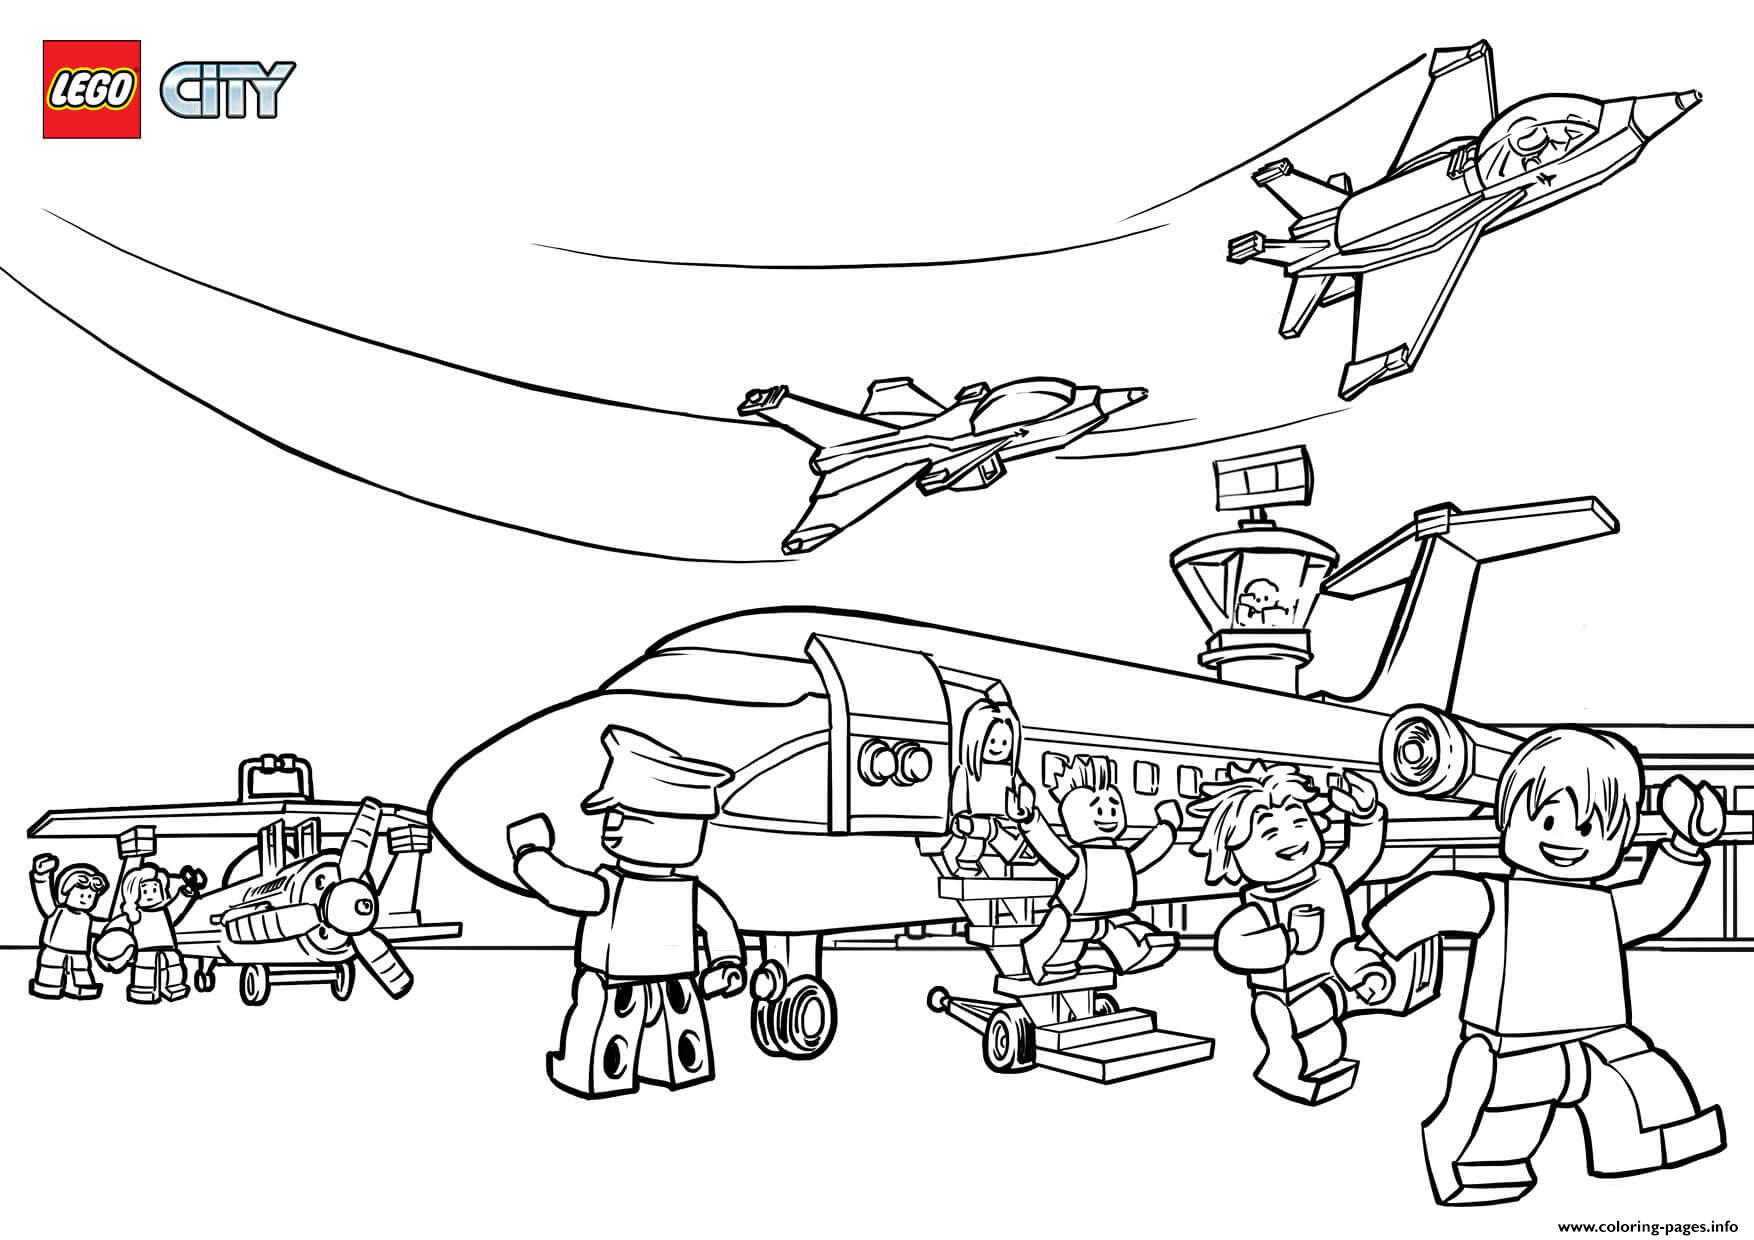 airport maps coloring pages | Lego City Airport Coloring Pages Printable